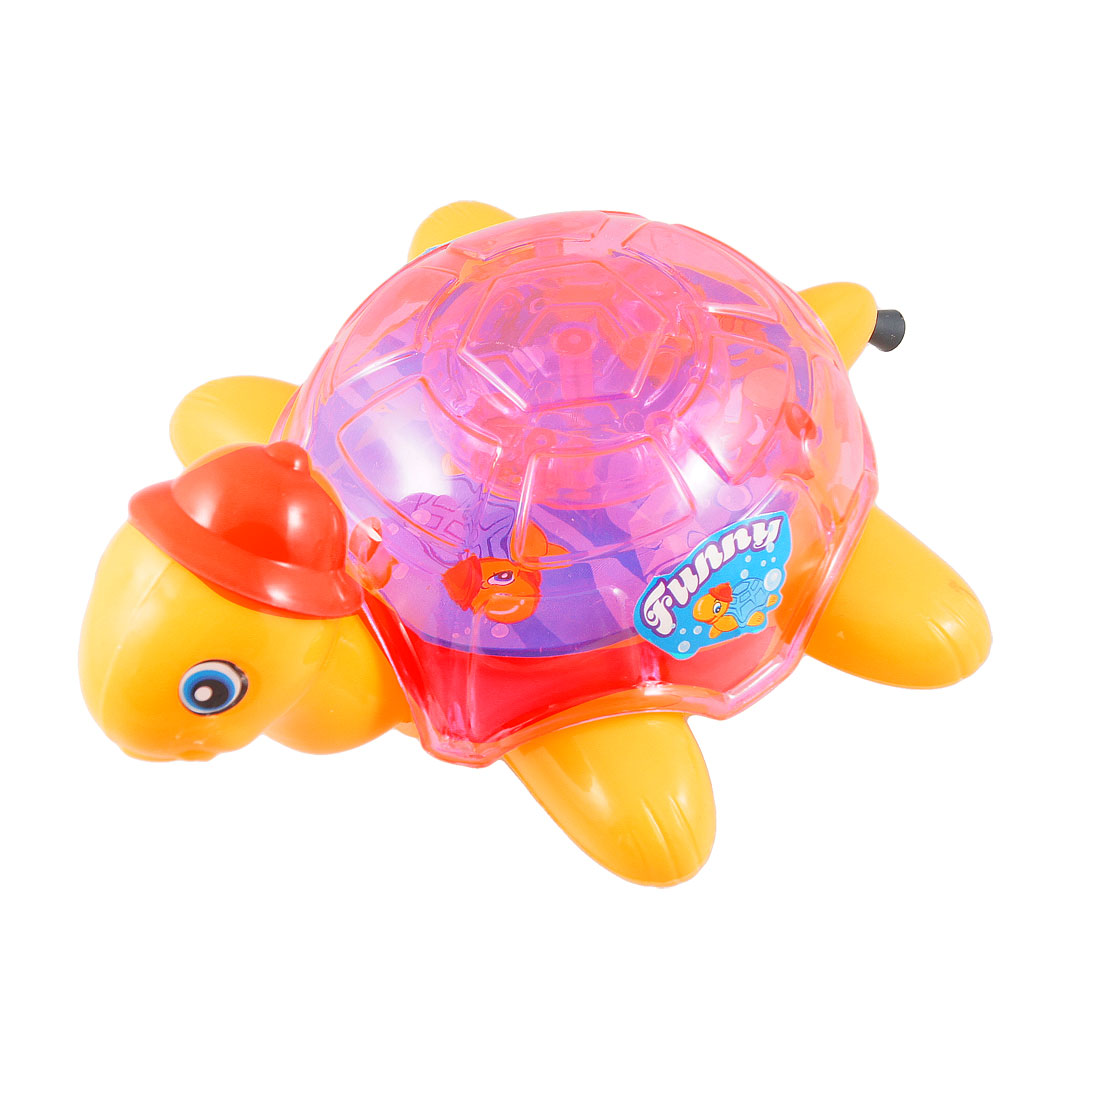 Yellow Pink Plastic Pull String Flashing Turtle Shape Play Toy for Children